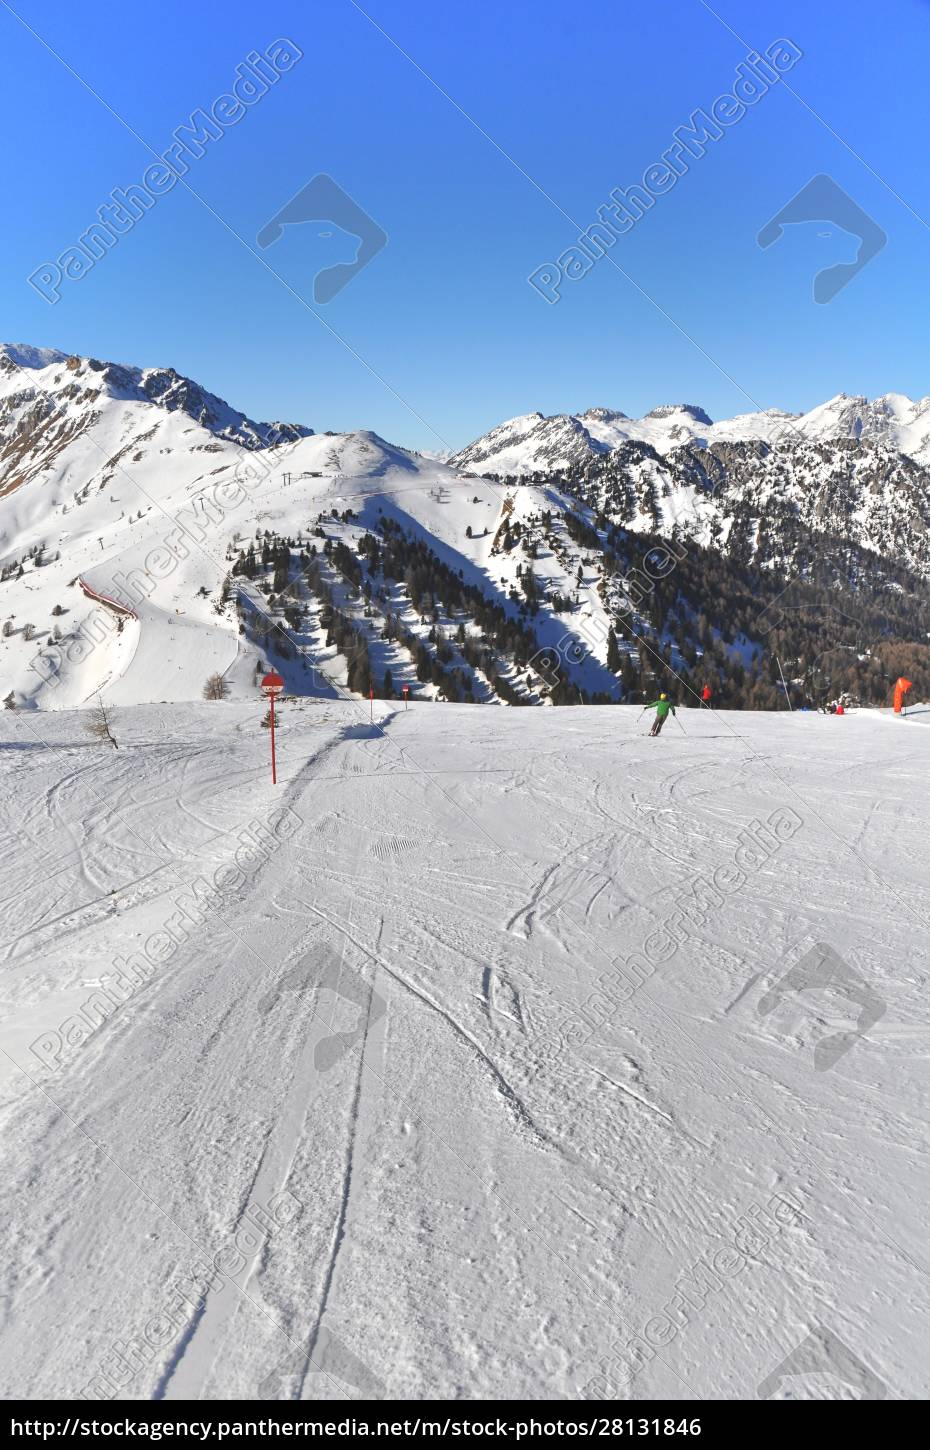 skiing, insouthern, tyrol - 28131846